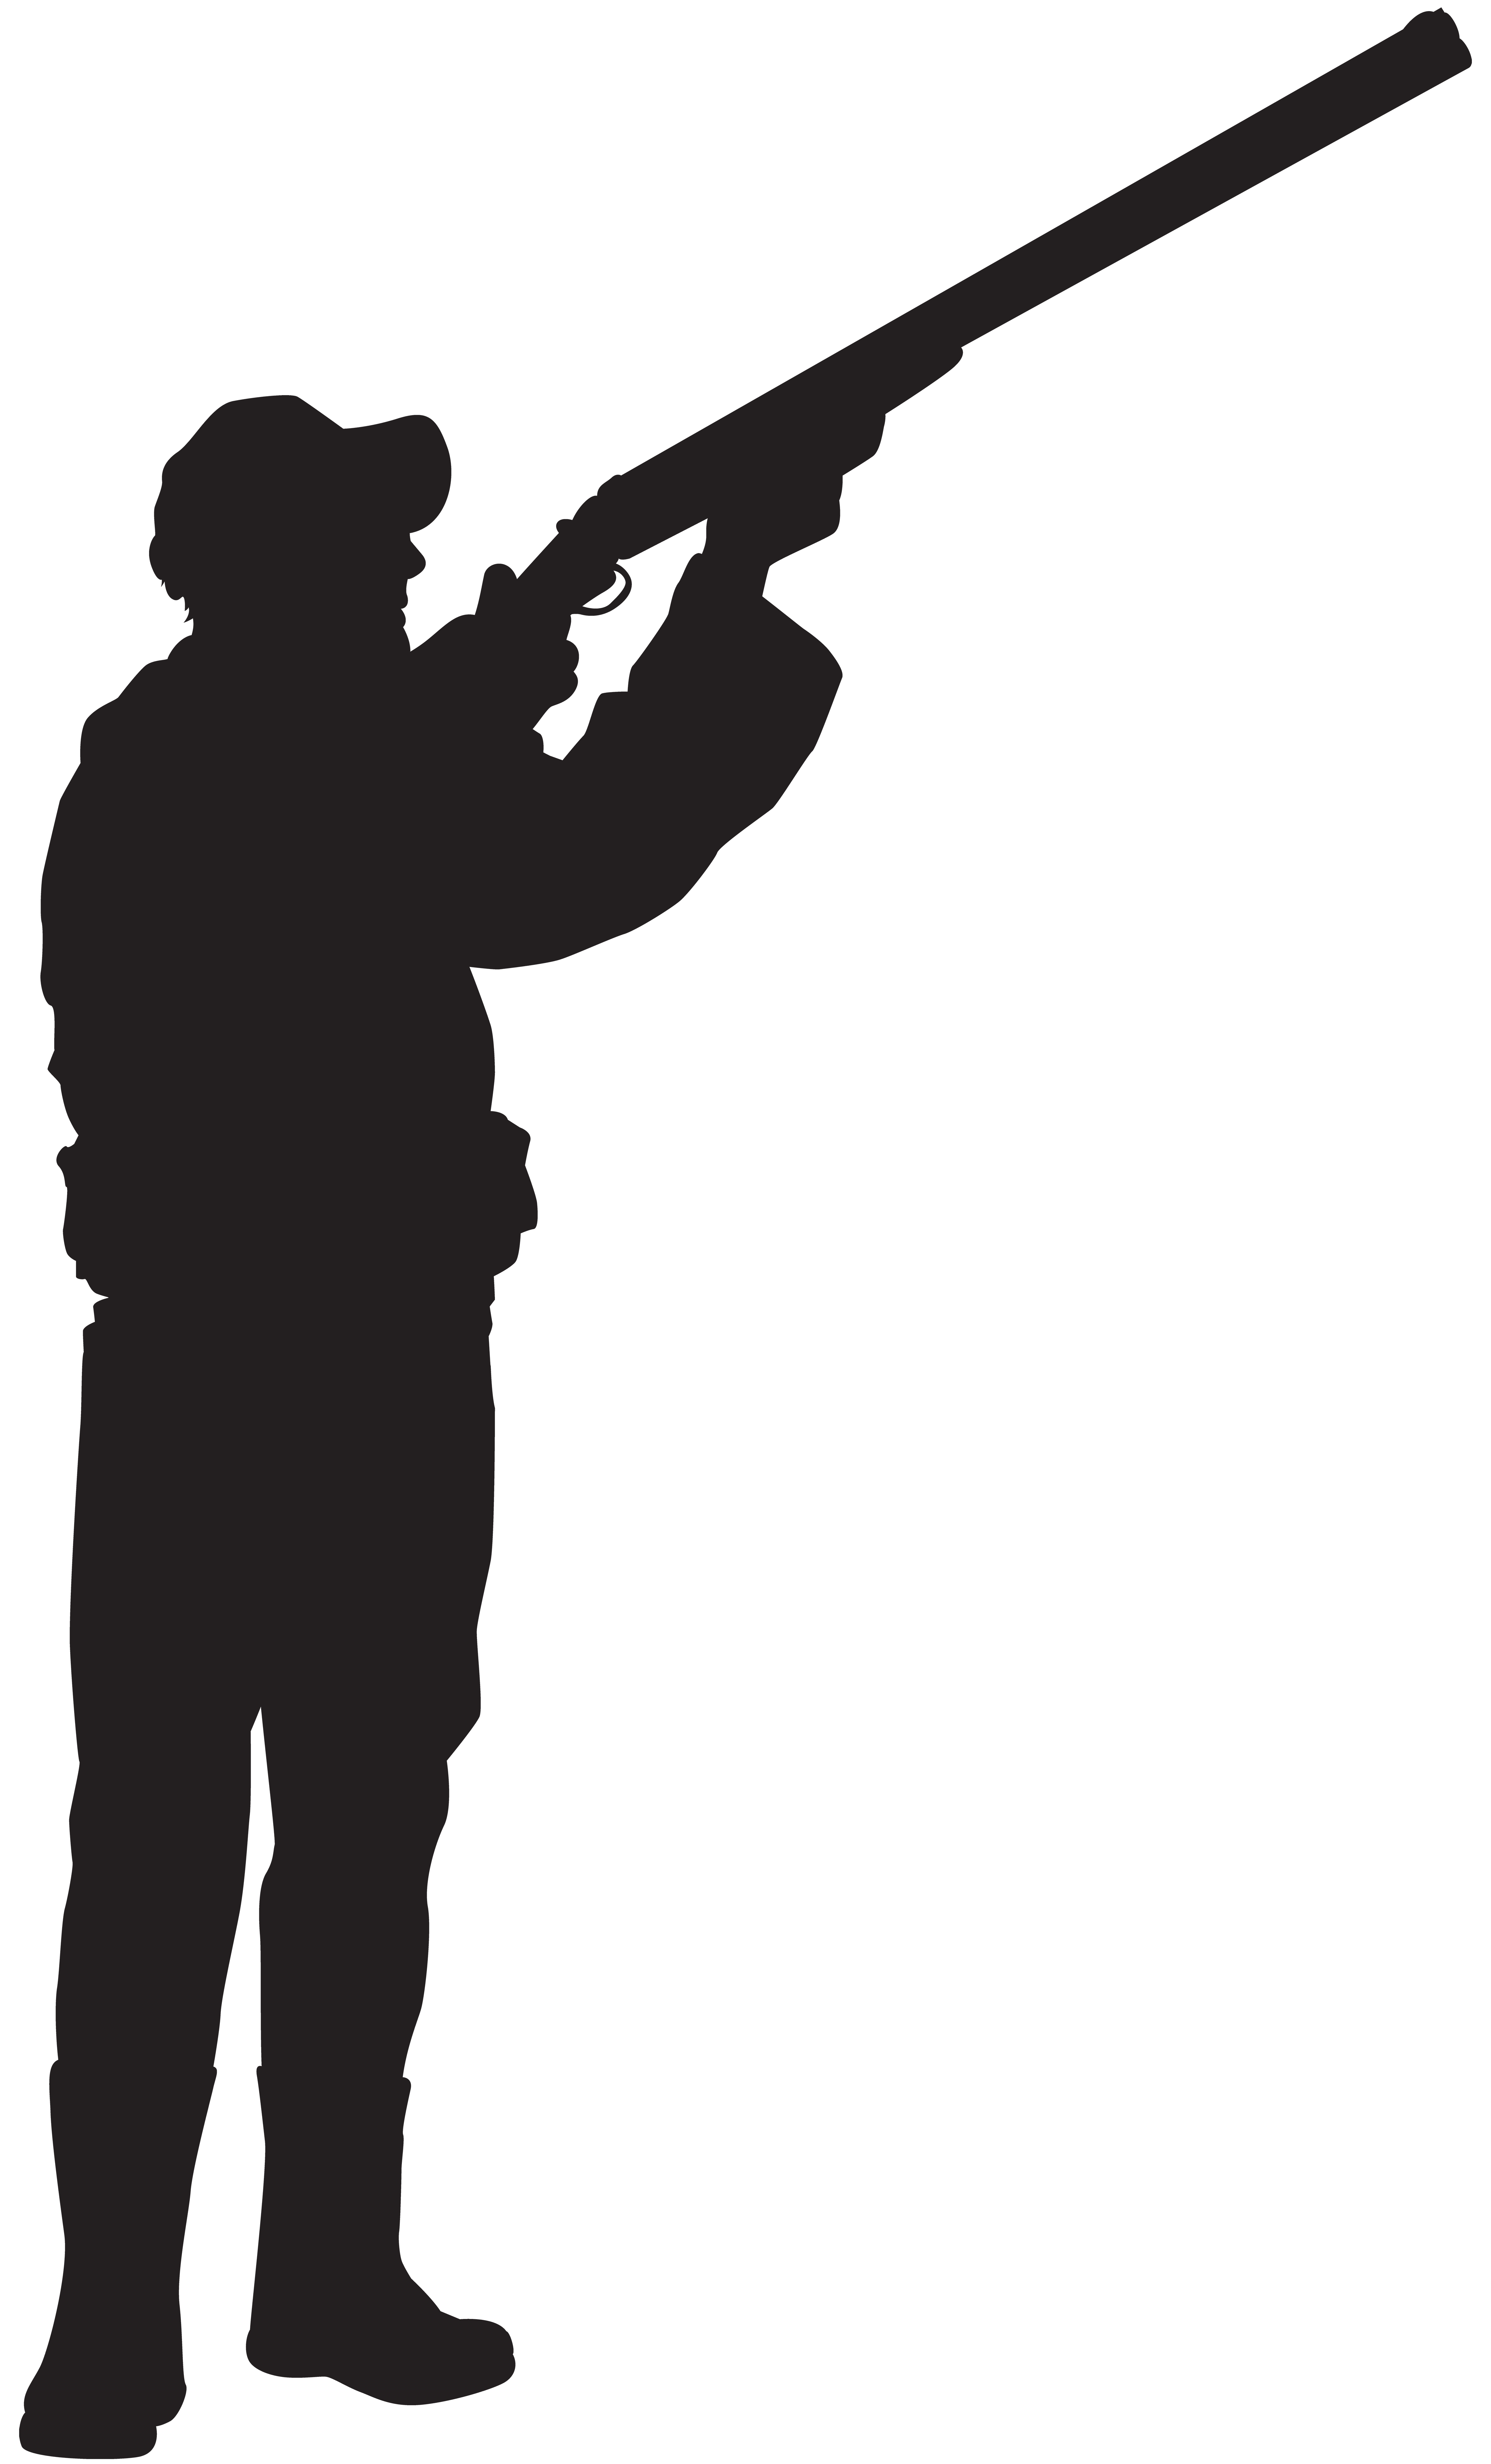 clip library stock Hunter clipart. Silhouette png clip art.